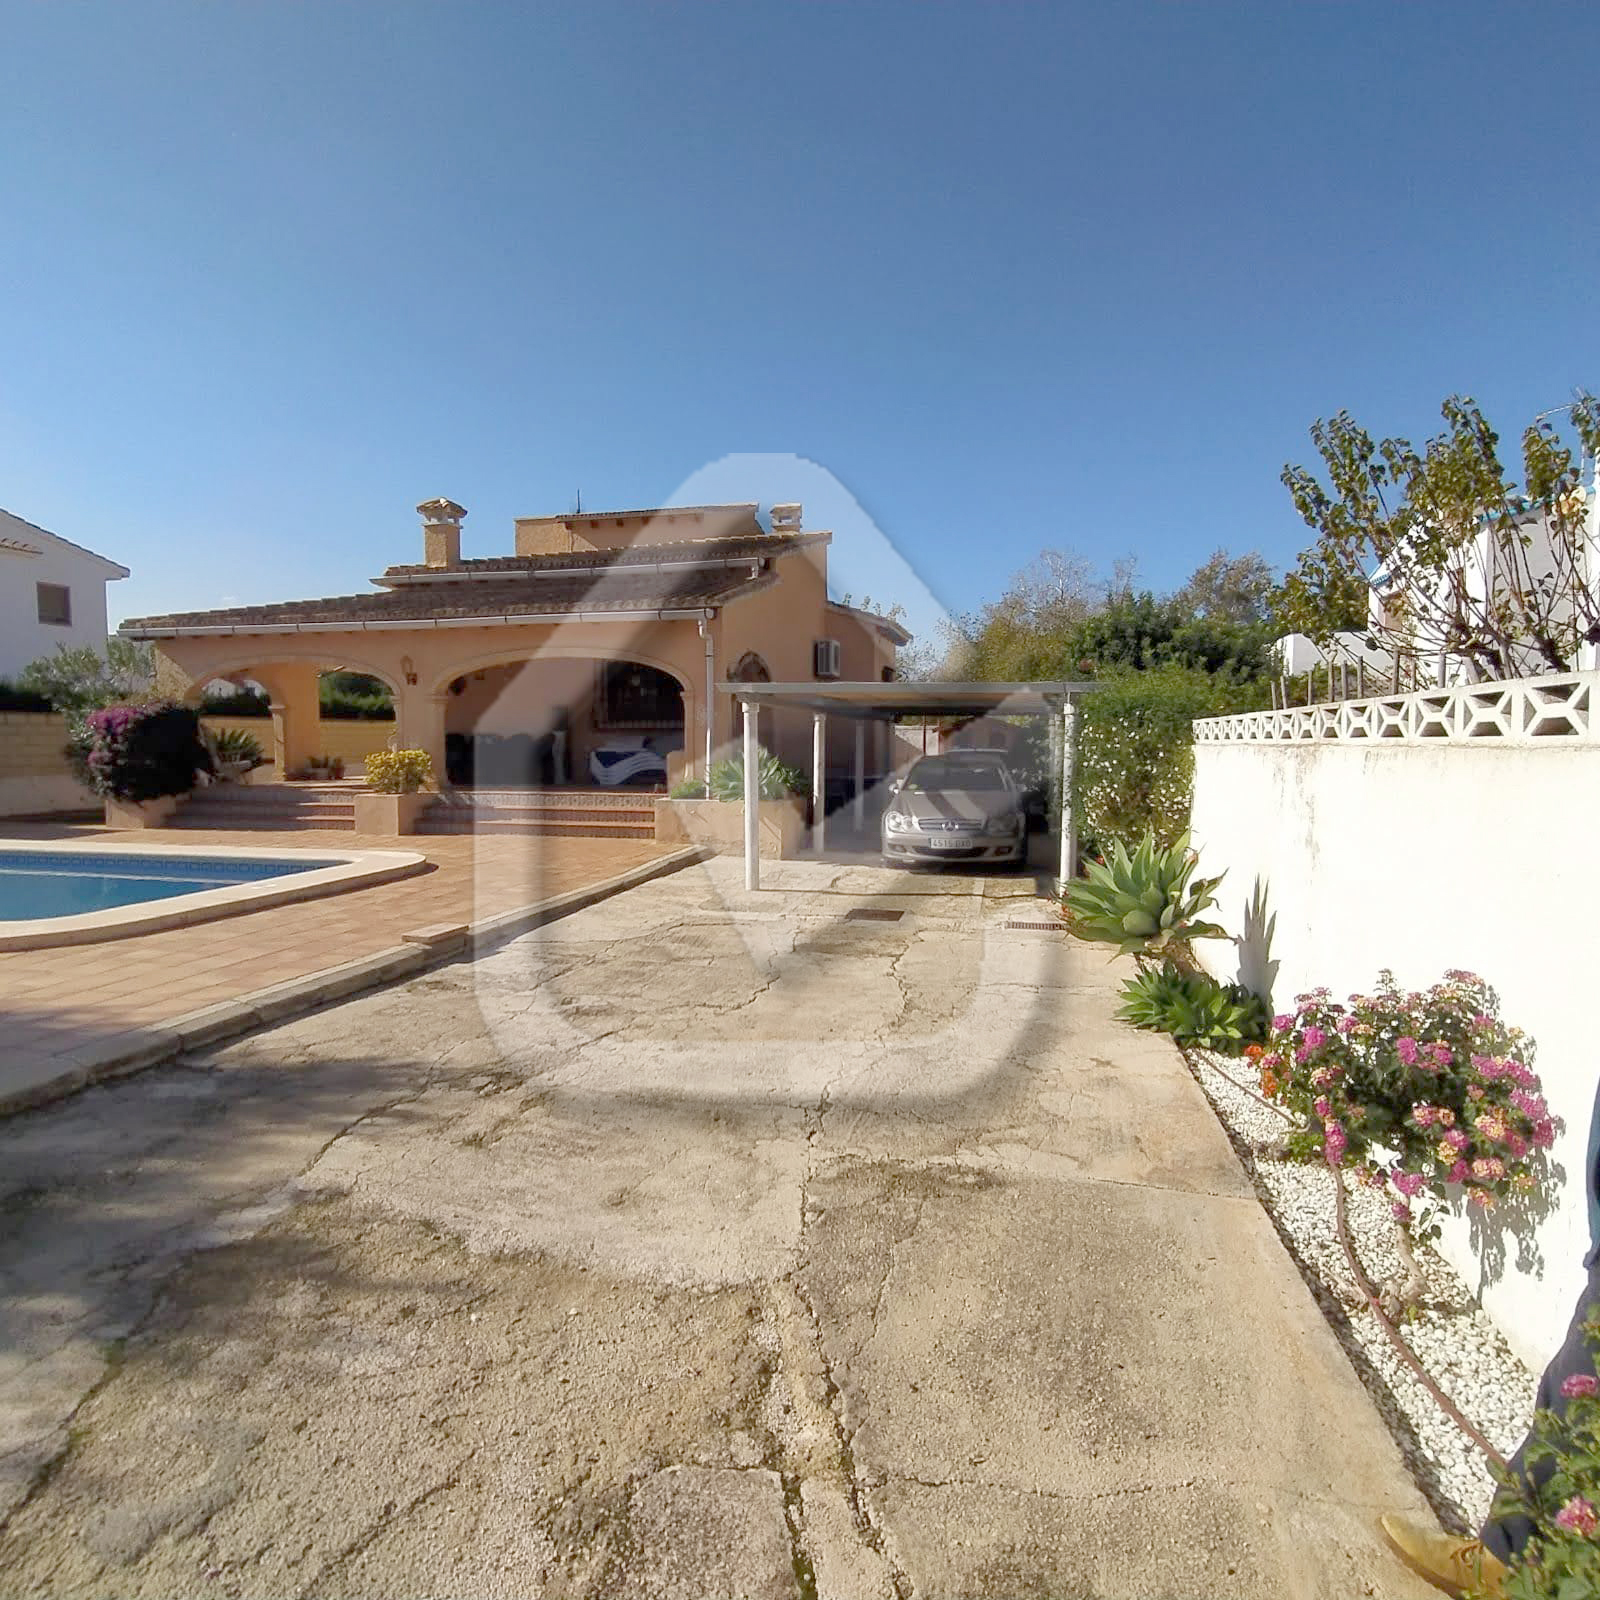 Photo  number 50: Villa in Sale in Denia, Area Marinas, Sector Bassetes-bovetes. Ref. 5-36-14957